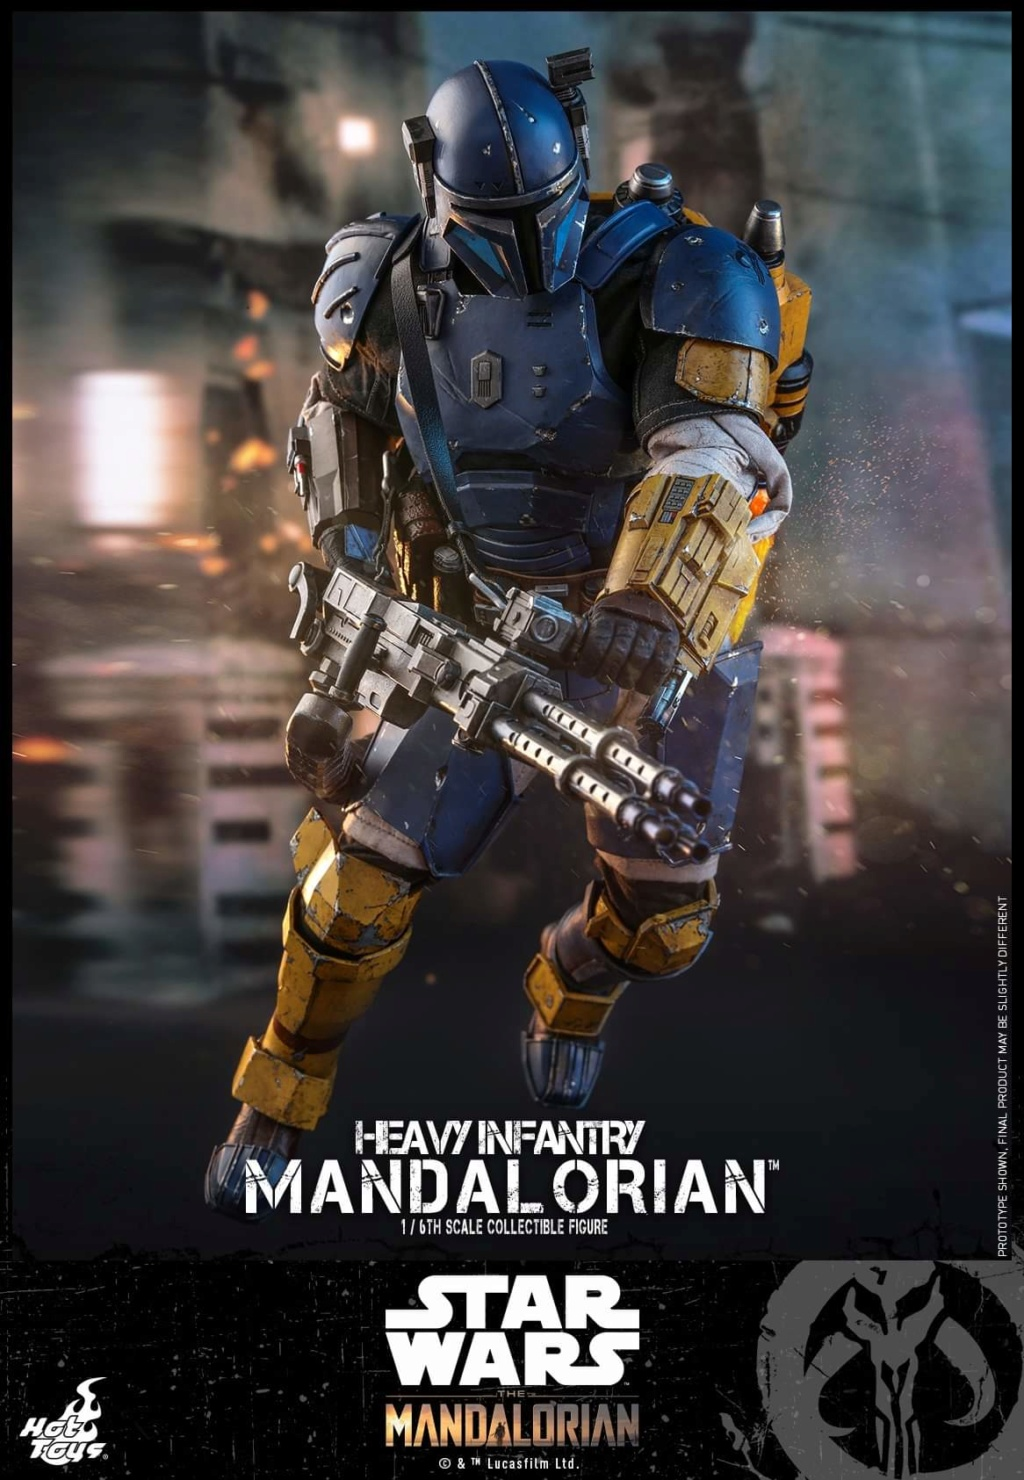 Heavy Infantry Mandalorian Collectible Figure 1/6th Hot Toy. Fb_img70